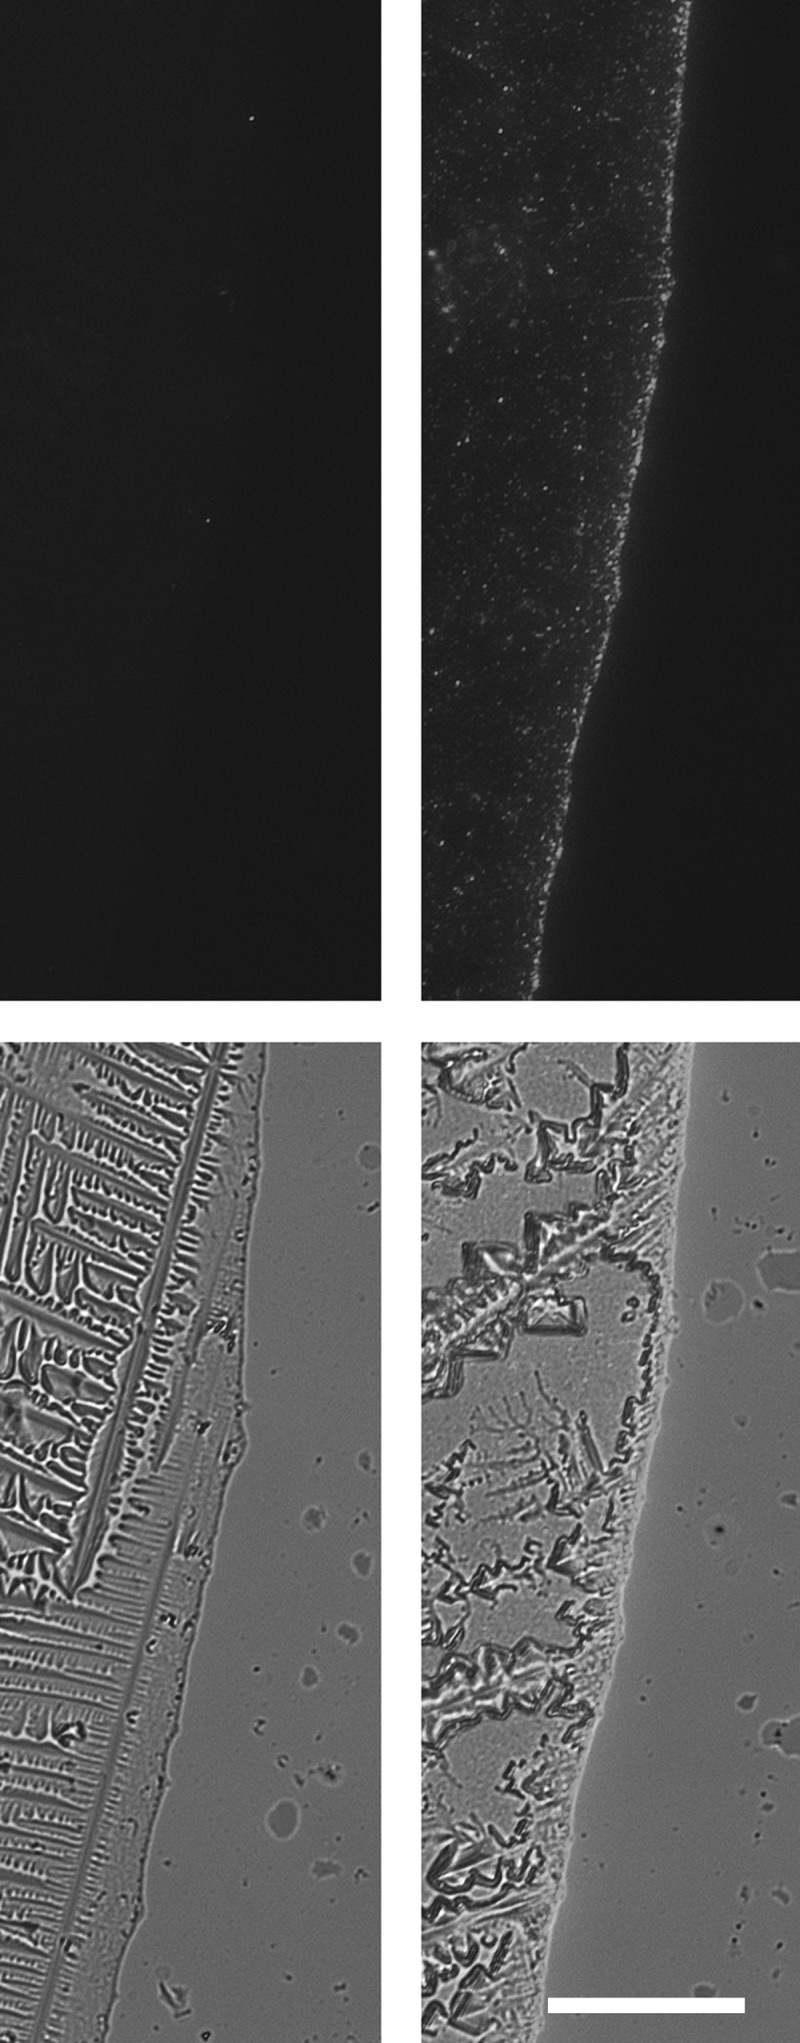 CD63-eGFP but not eGFP expressing HEK293T cells release high quantities of eGFP-labelled particles into their extracellular environment. After processing of supernatants of HEK293T cells either transfected with eGFP-encoding plasmids (left side) or CD63-eGFP-encoding plasmids (right side) with ultracentrifugation, 1 µL of each resolved pellet was transferred onto a microscopic slide and allowed to dry (results in crystal formation). At the original border of the HEK293T CD63-eGFP drop, high amounts of GFP + -particles were concentrated. Upper row: fluorescent image, lower row: overlay fluorescent and bright field images; scale bar: 50 µm for all images.